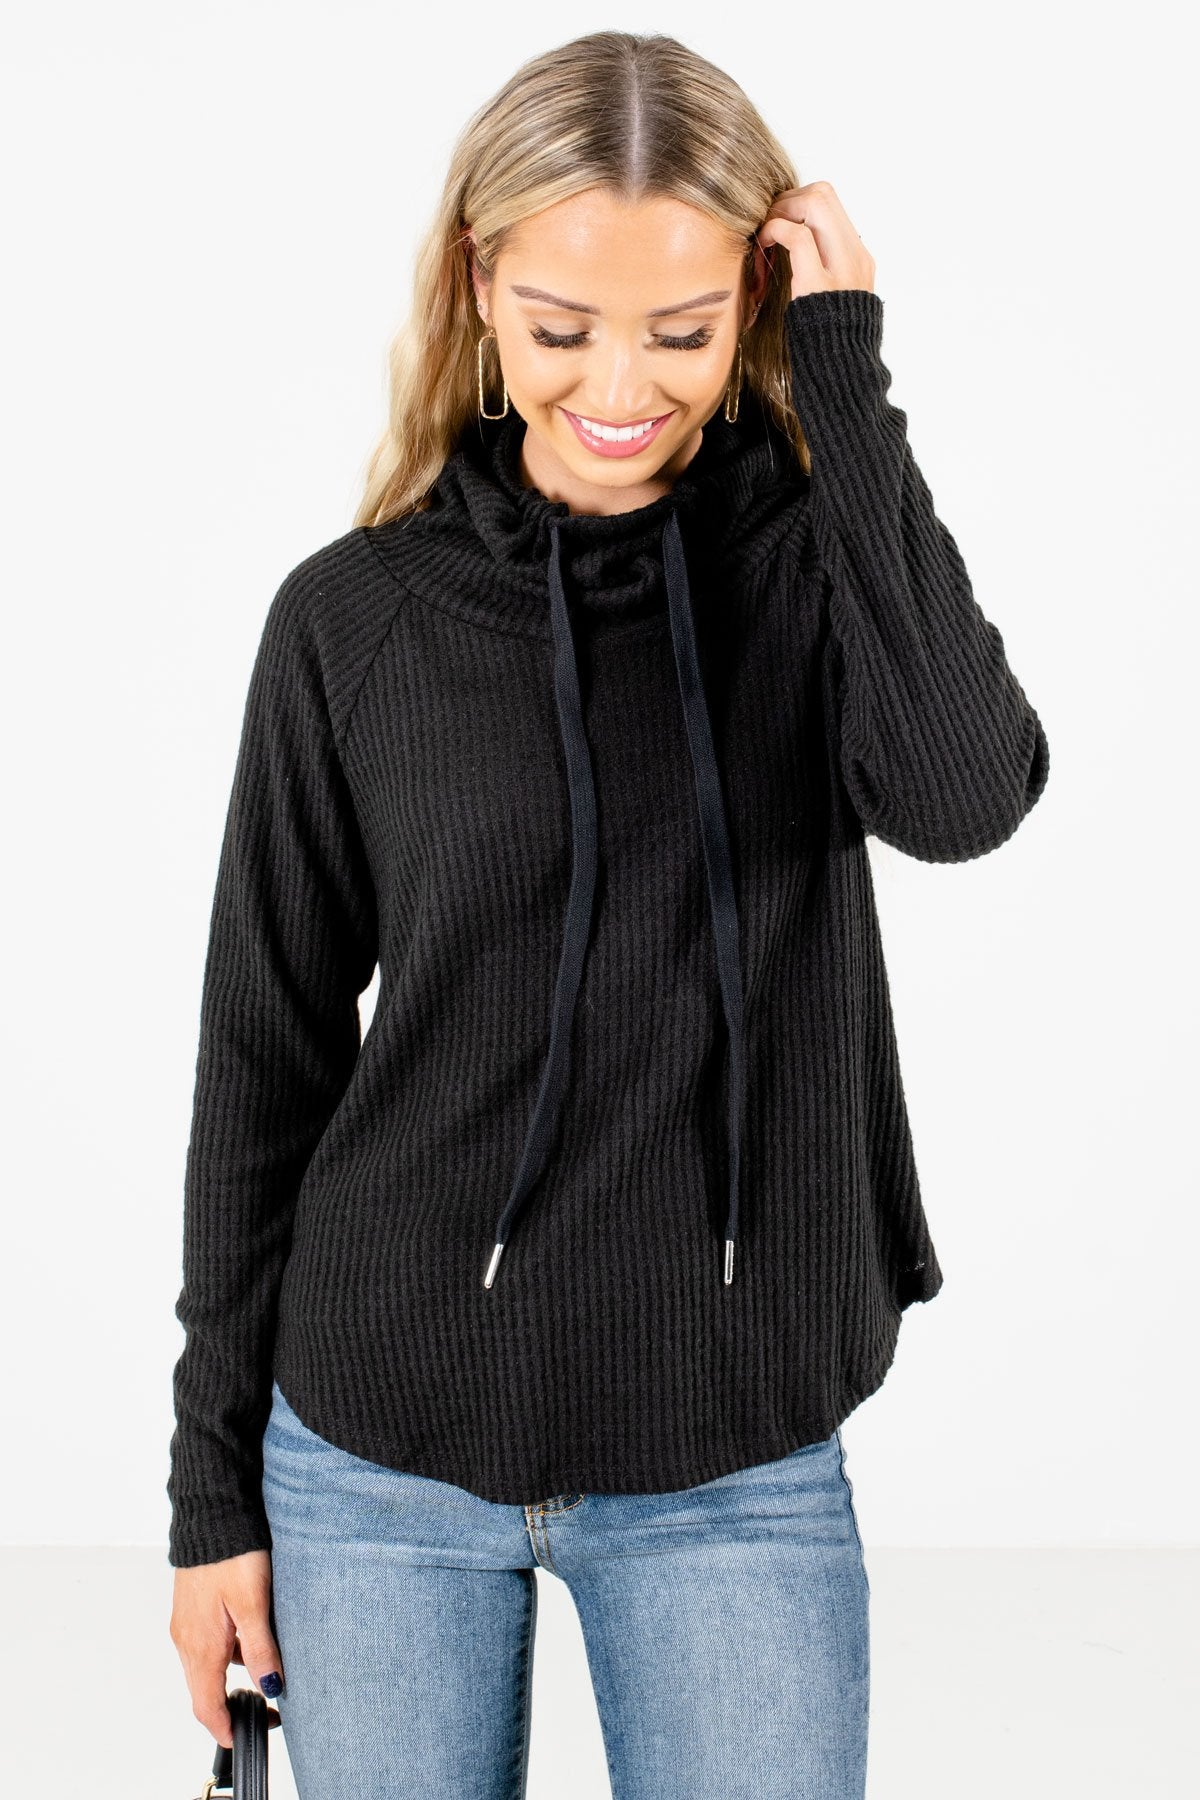 Black High-Quality Waffle Knit Material Boutique Sweaters for Women